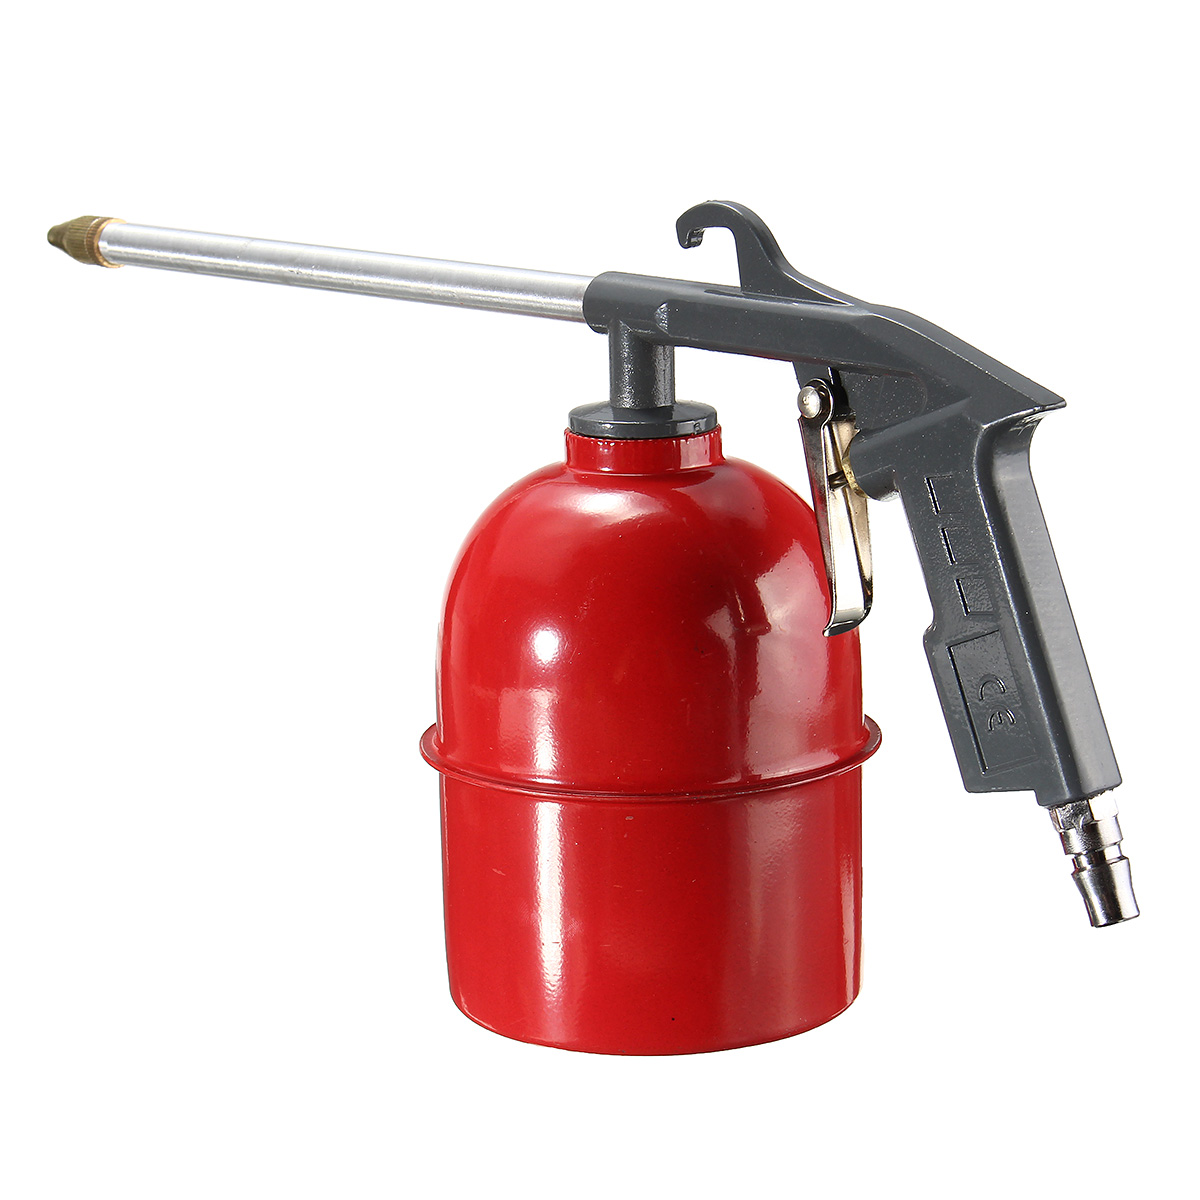 Auto Car Engine Cleaning Guns Solvent Air Sprayer Degreaser Siphon Tools Gray Engine Care Tools Automobiles Maintain Accessories